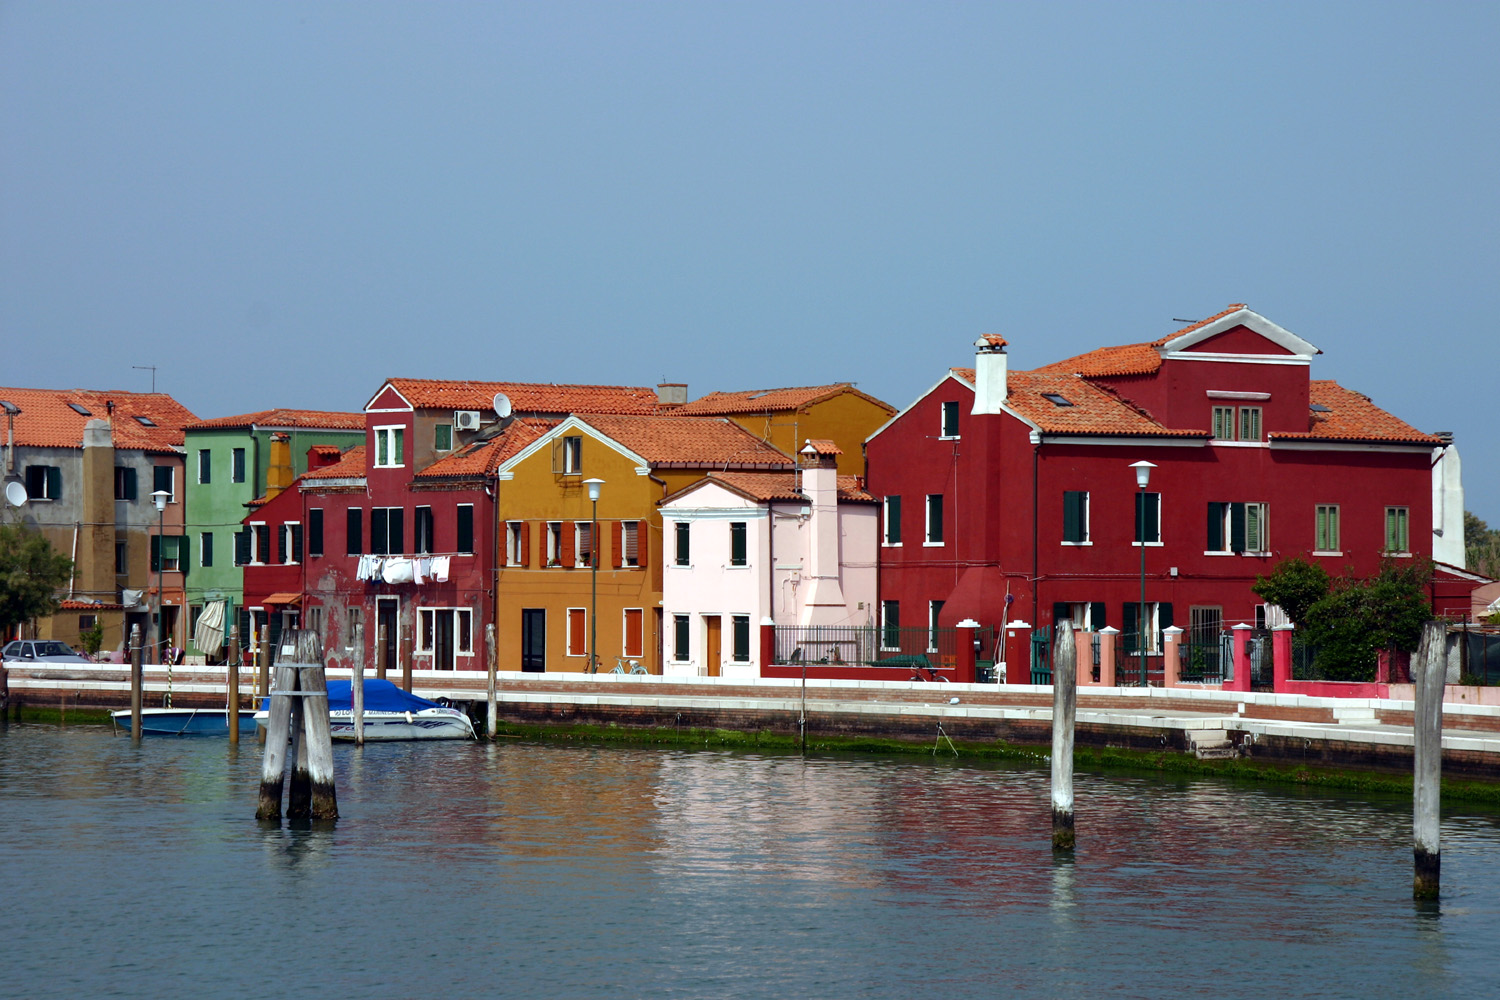 http://studentsblog.viublogs.org/files/2014/04/pellestrina.jpg